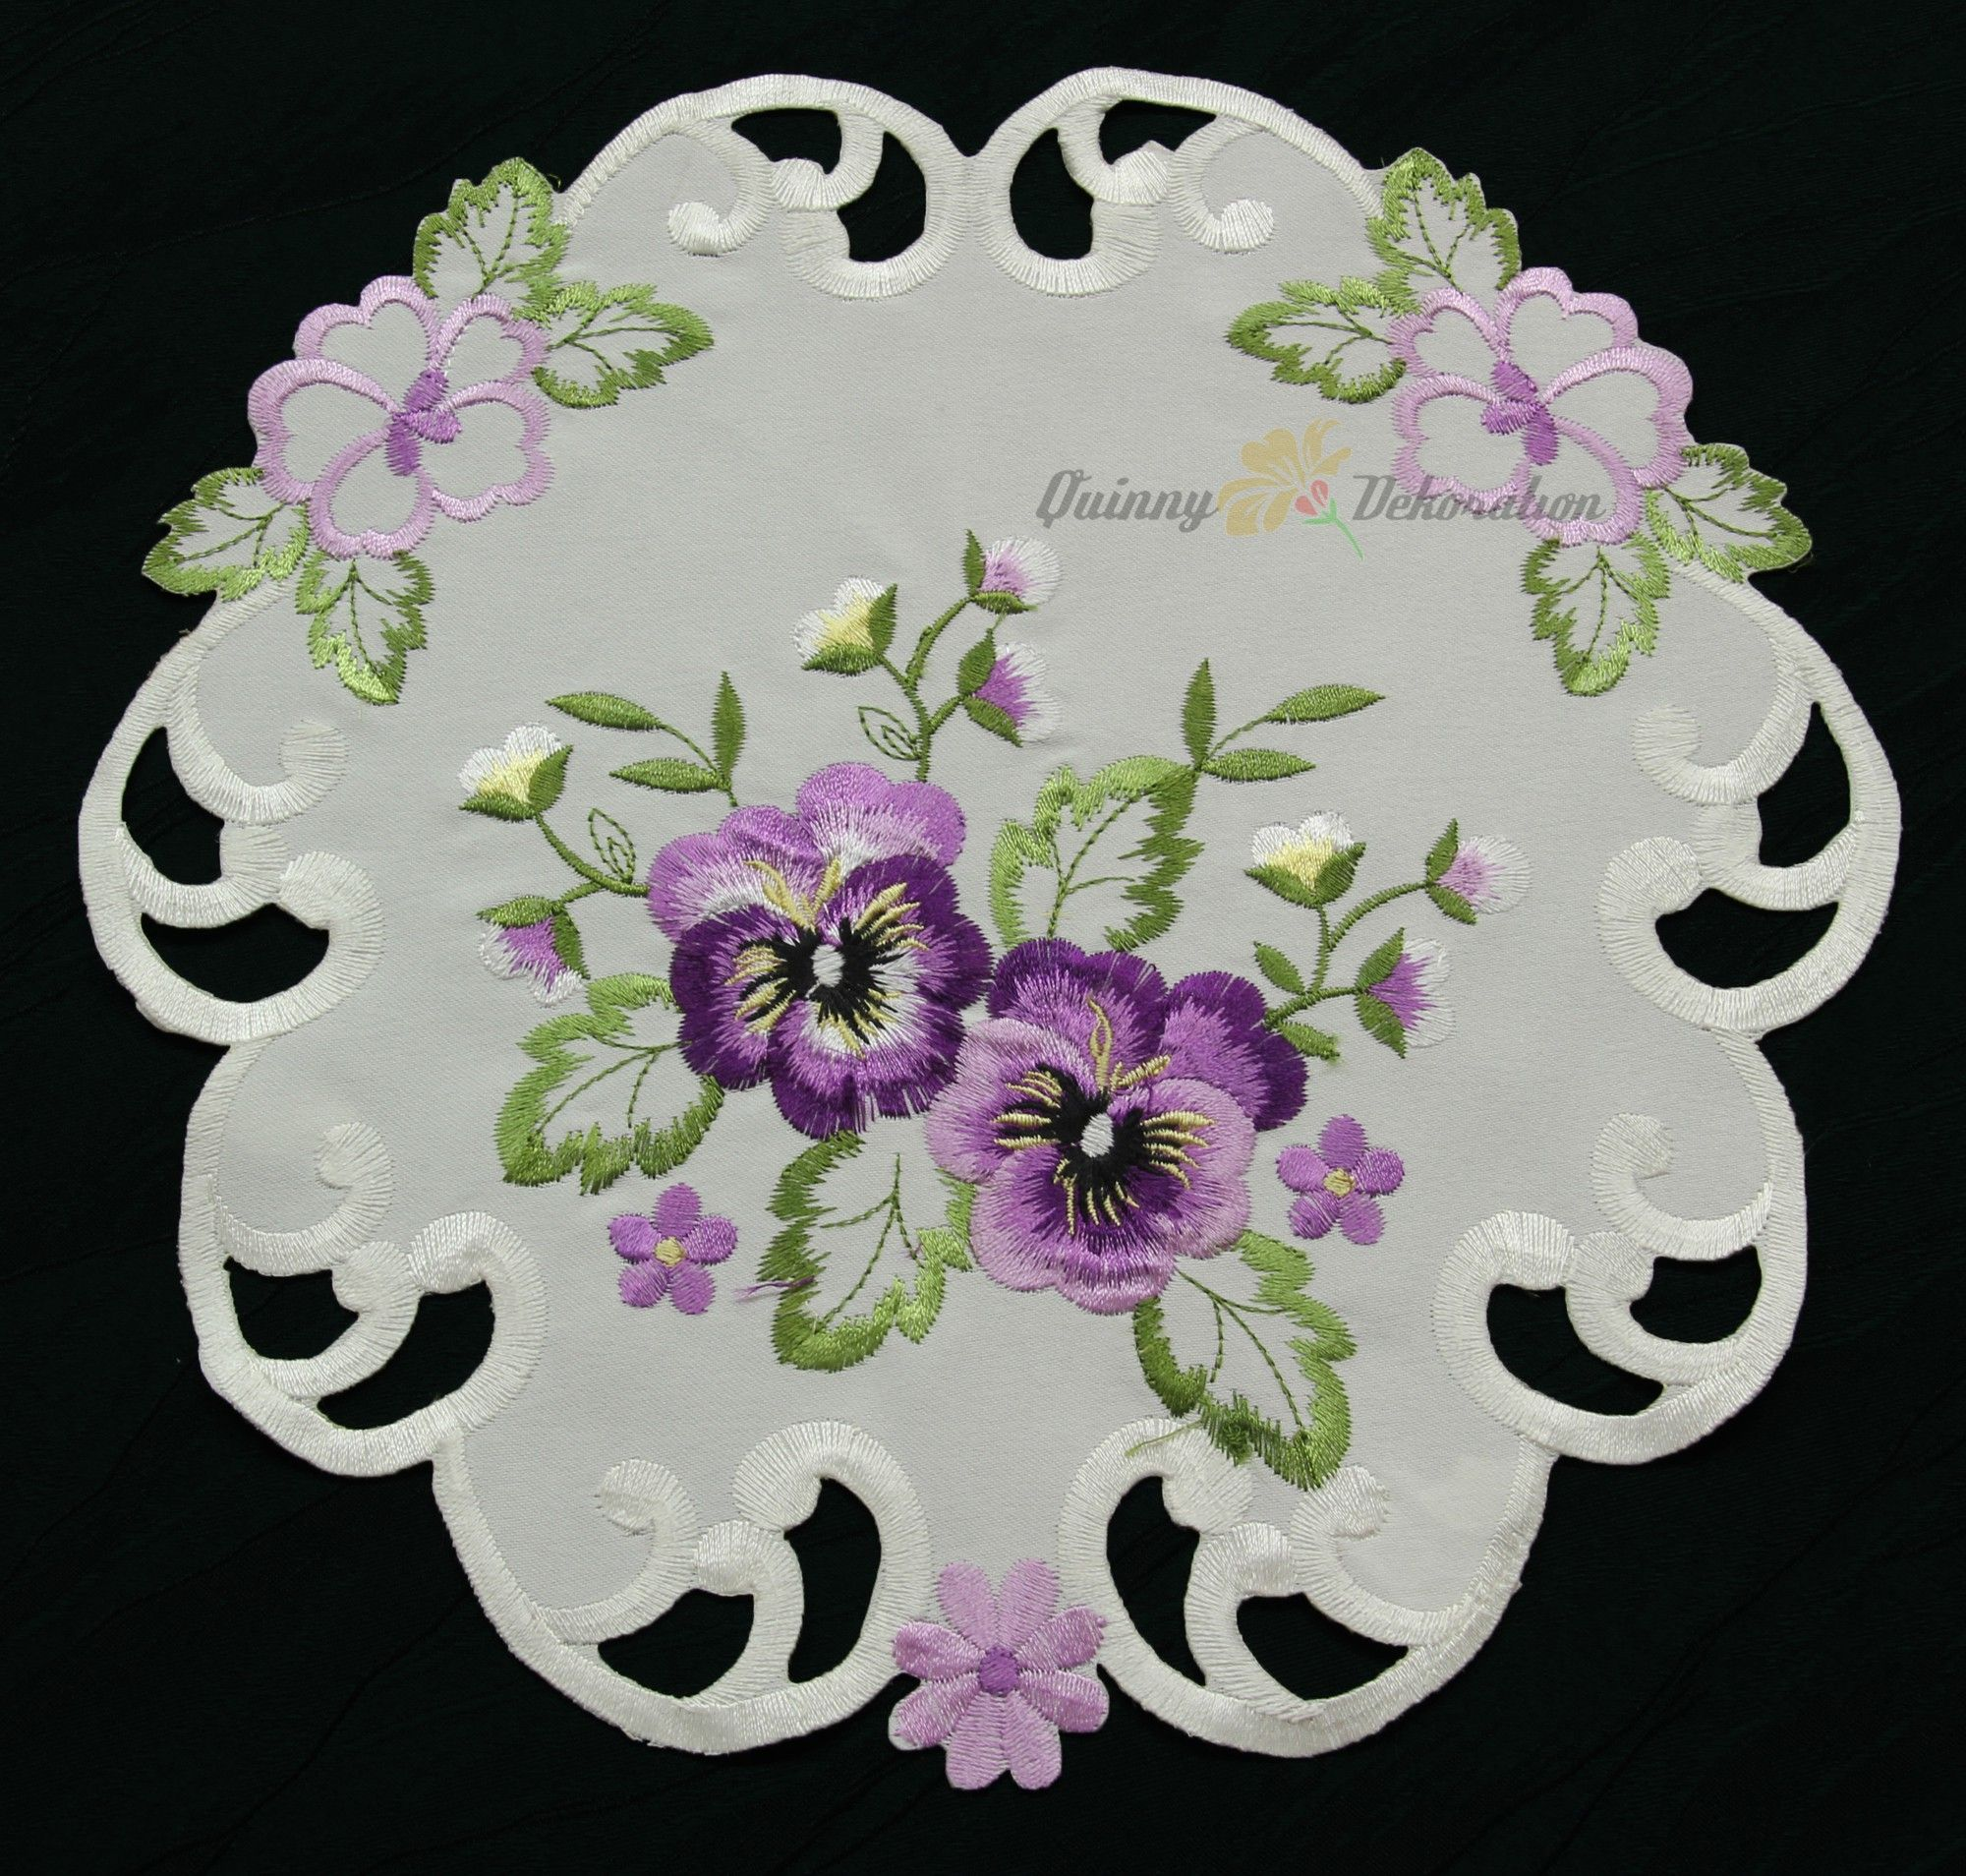 Table cover embroidery designs - Pansy Table Runner Doily Tablecloth Cushion Cover Cream Purple Flower Embroidery